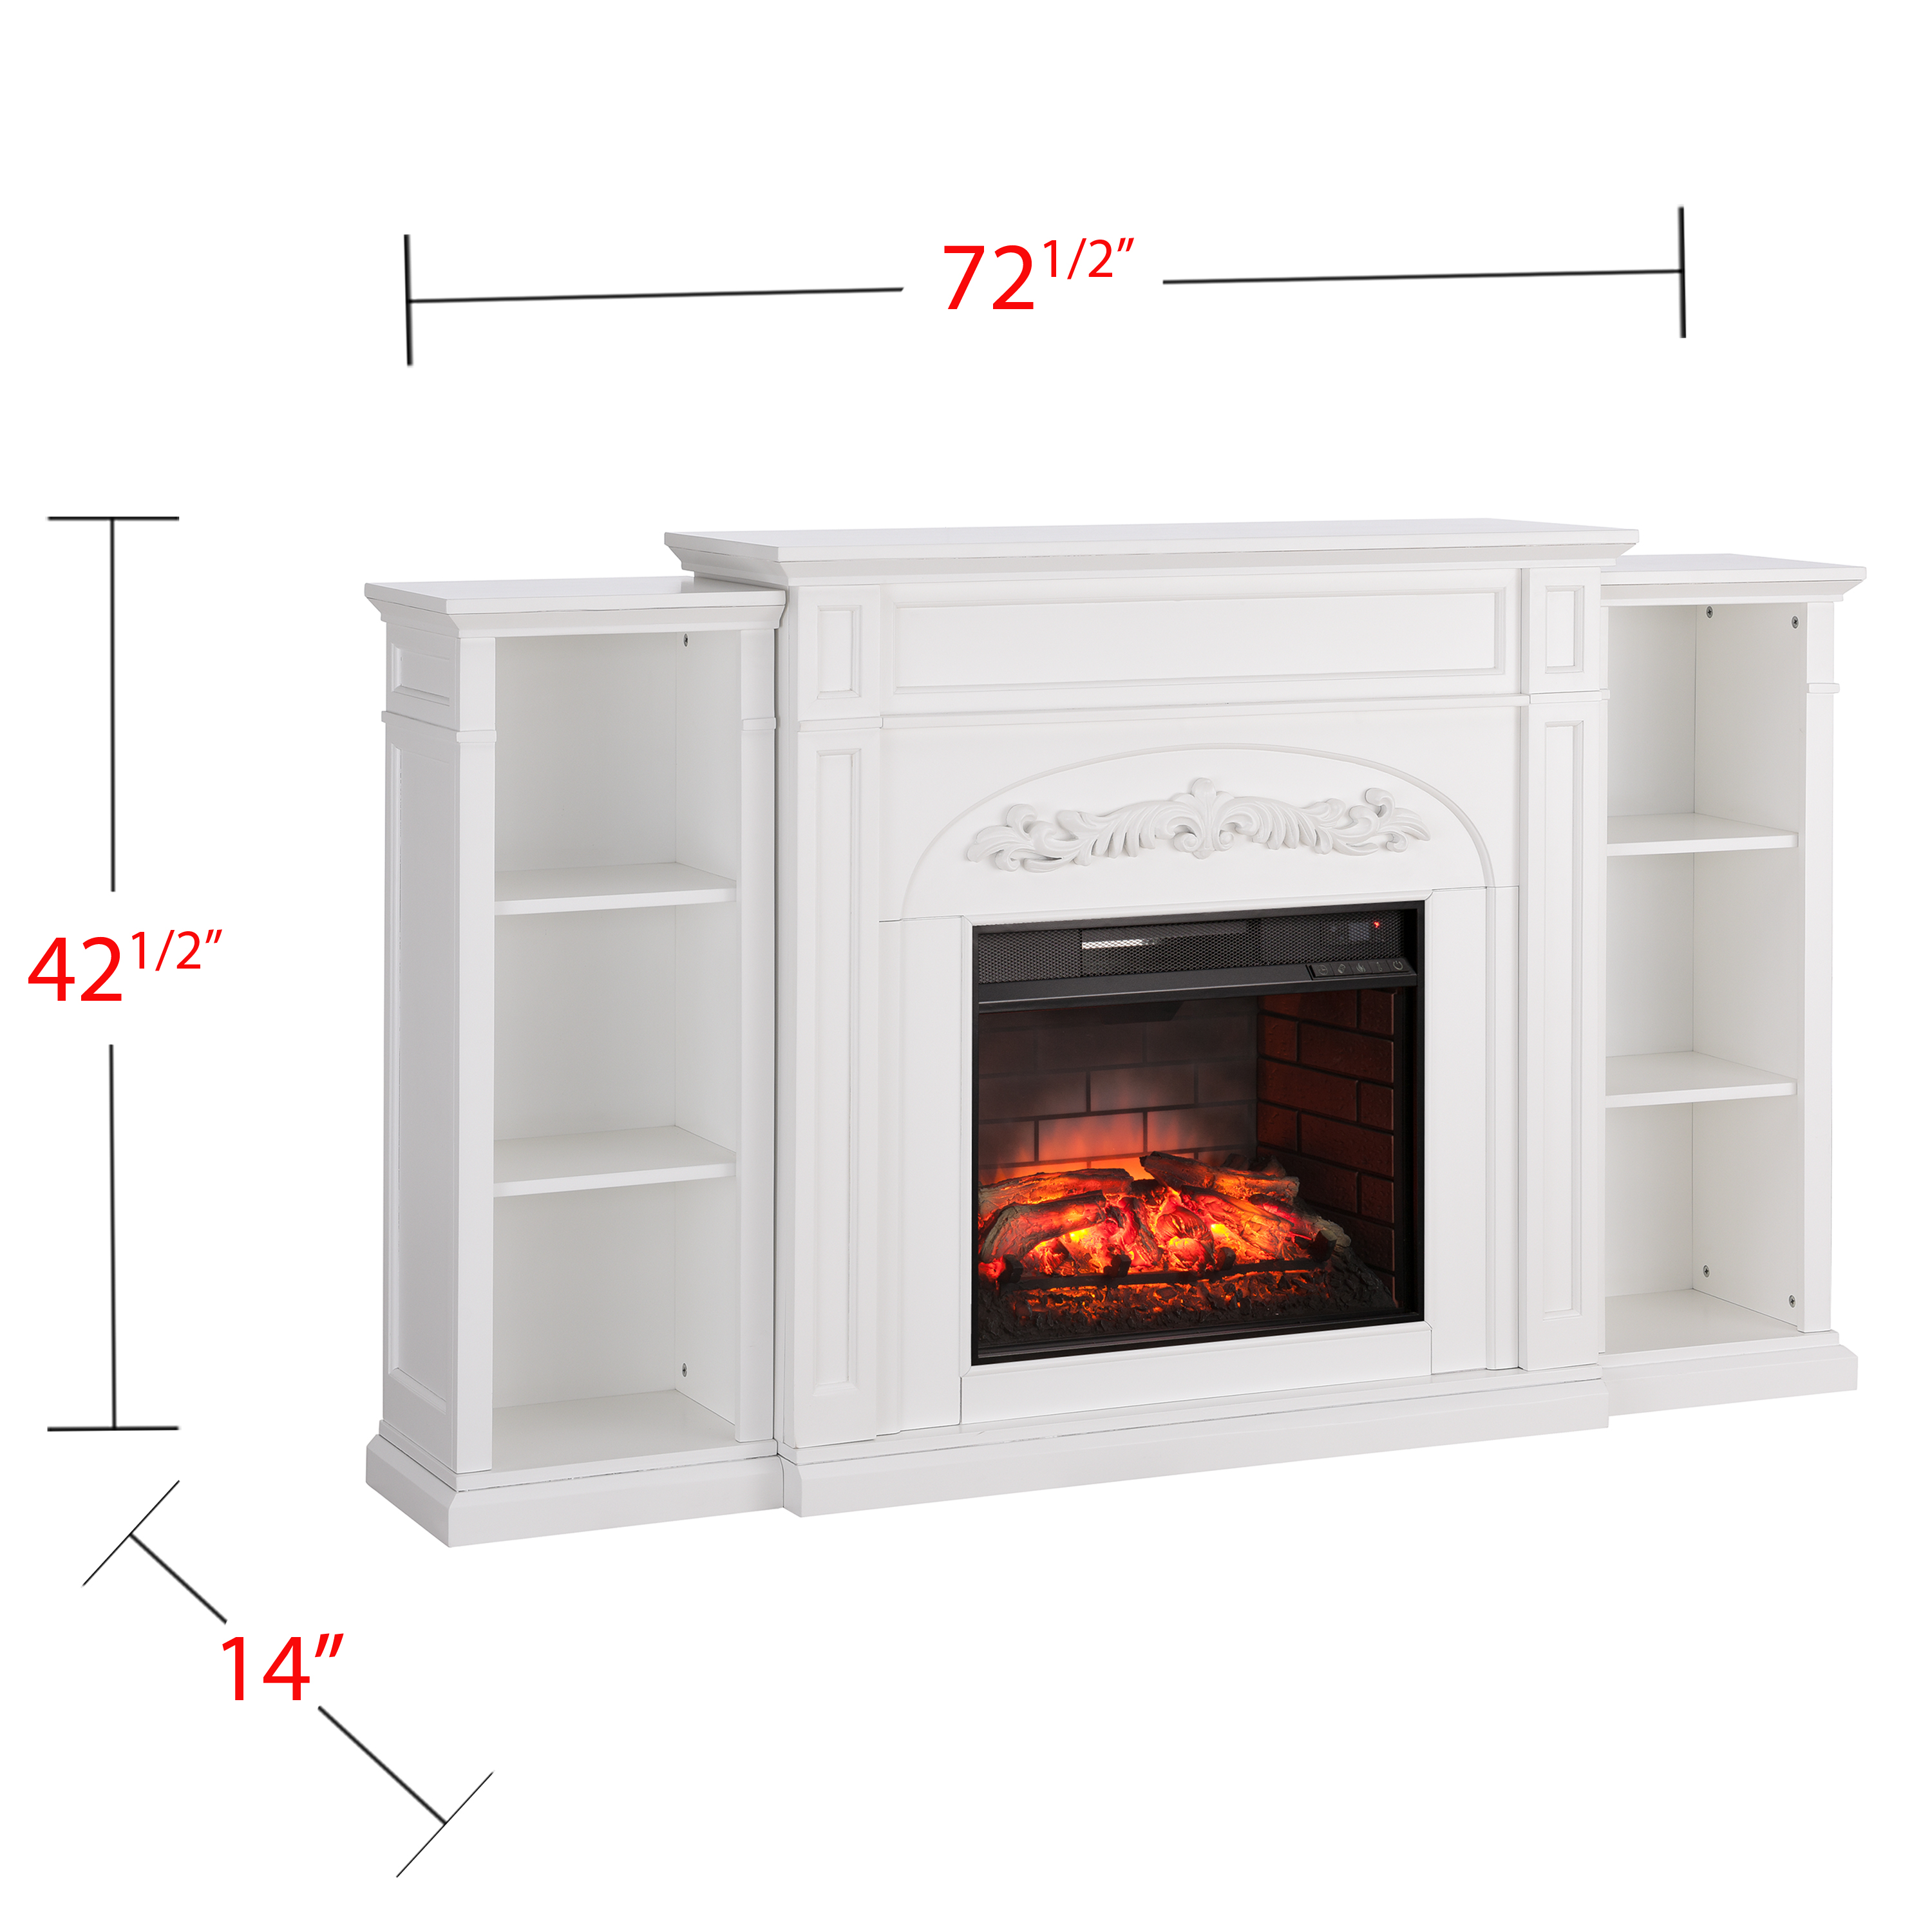 Crayfire Bookcase Infrared Electric Fireplace, White